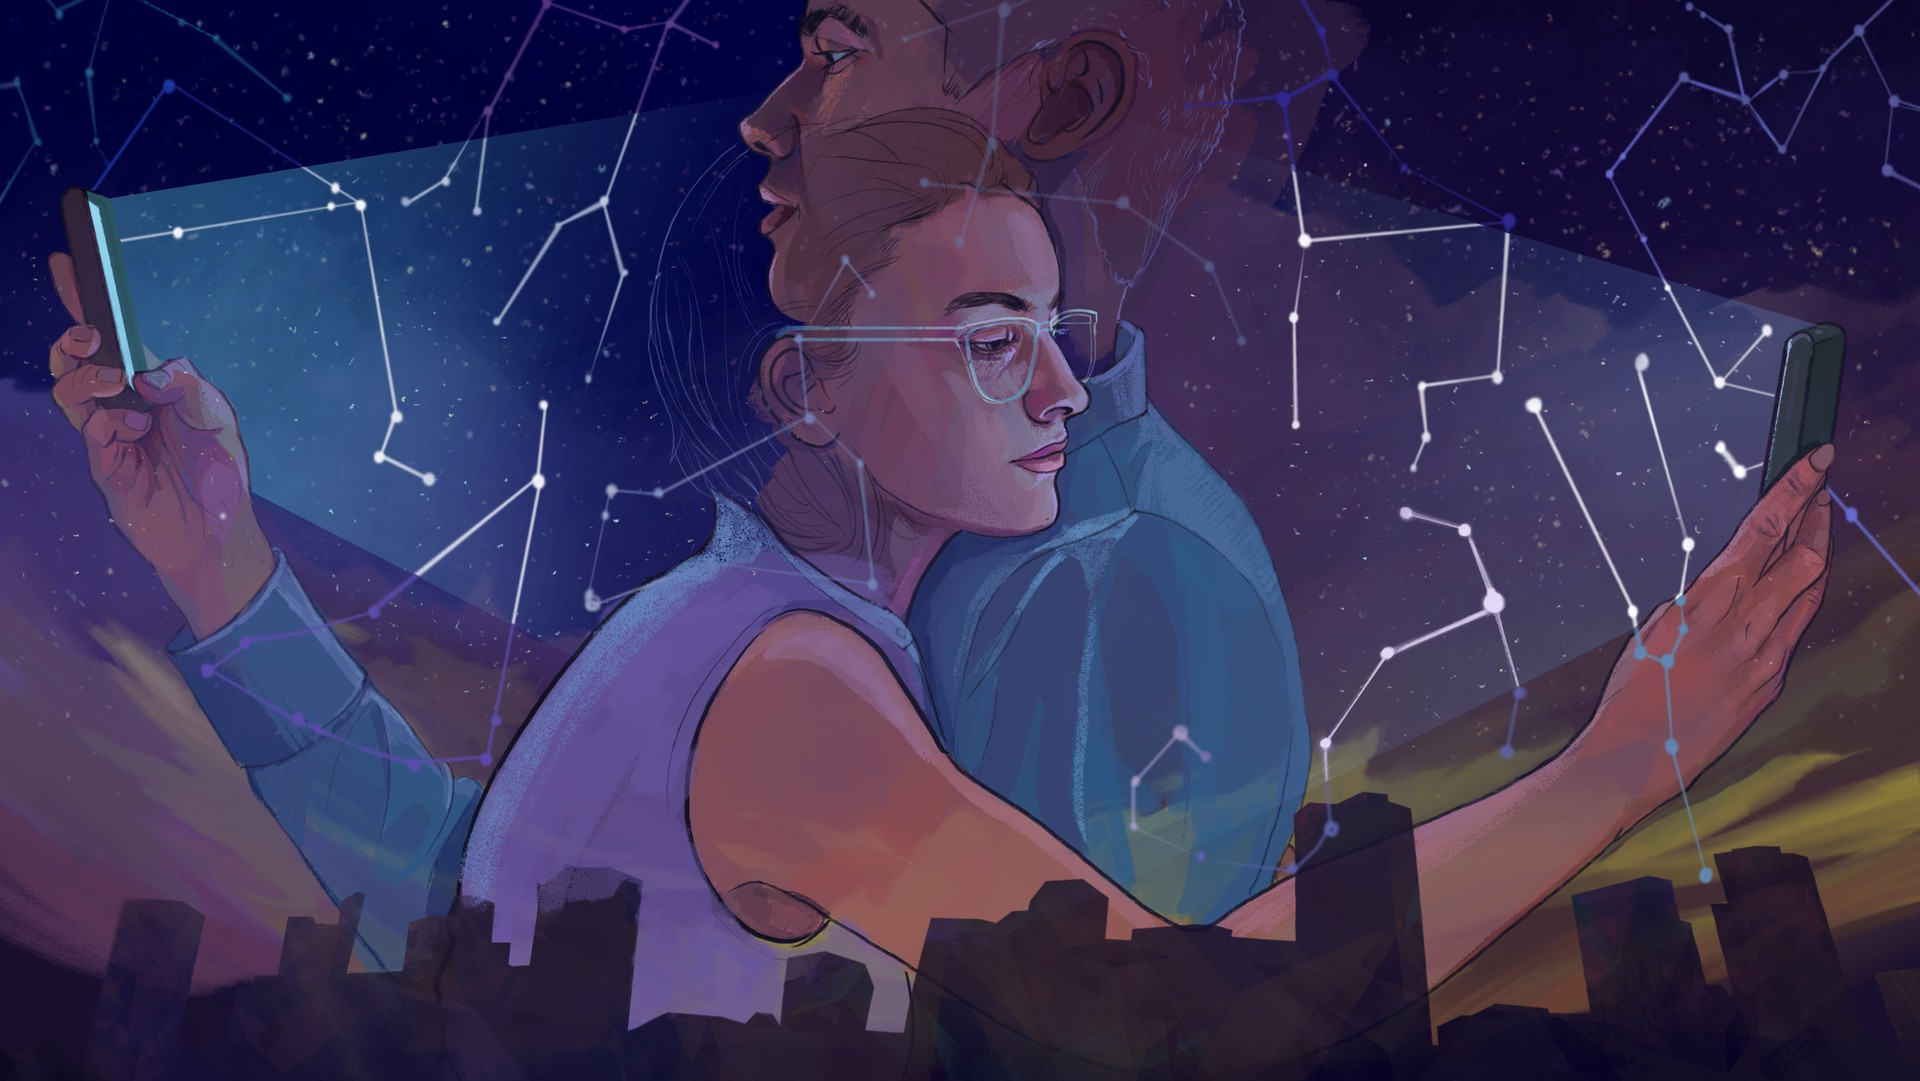 Why Are Millennials So Into Astrology?